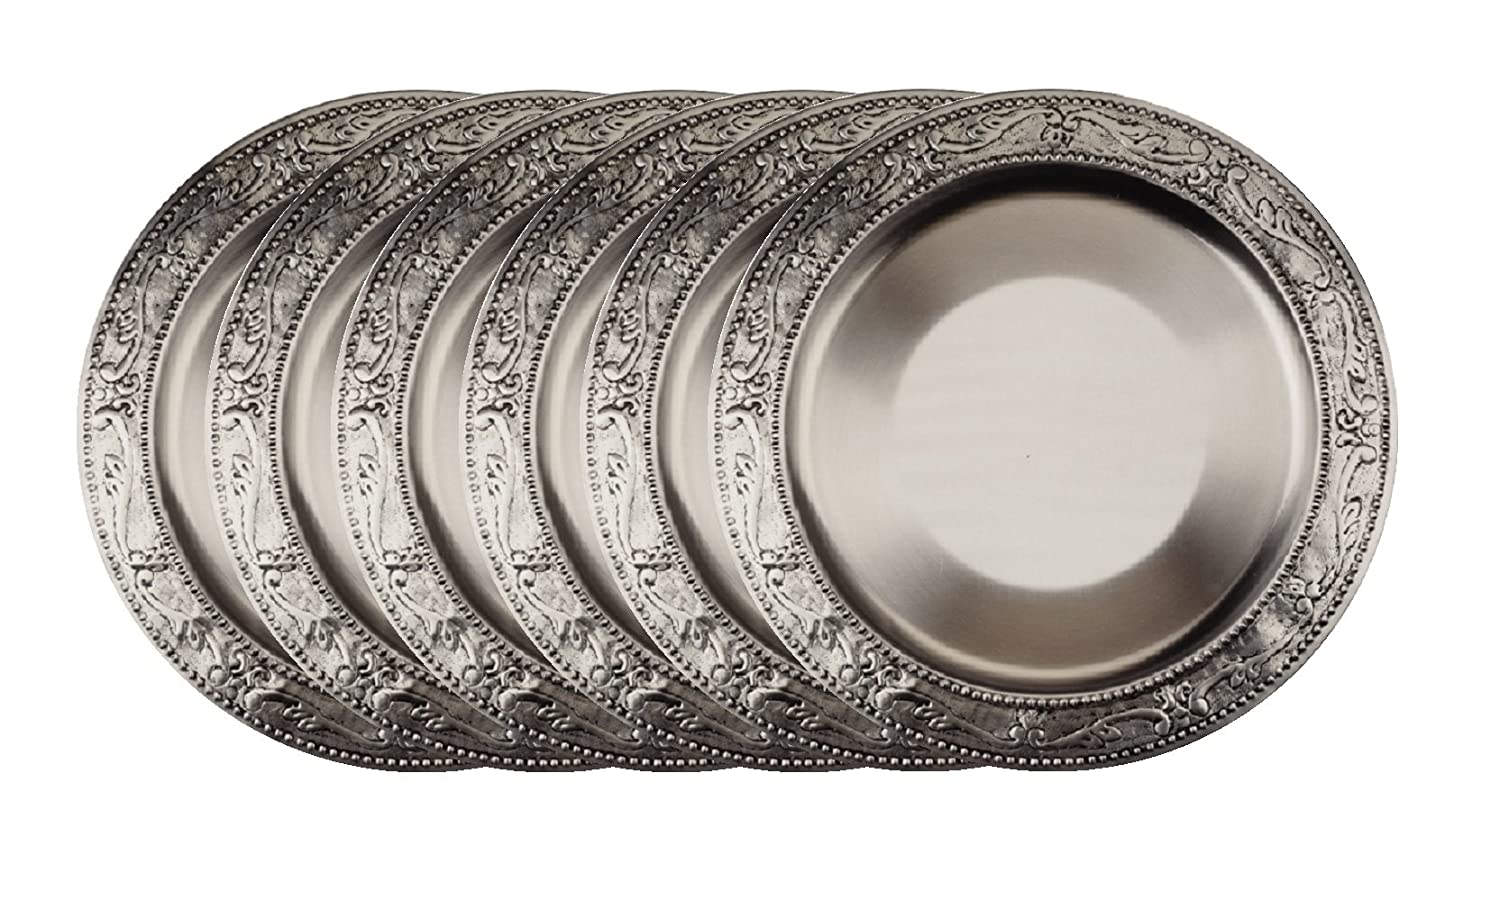 Embossed Victorian Antique Pewter Charger Plates Set of 6